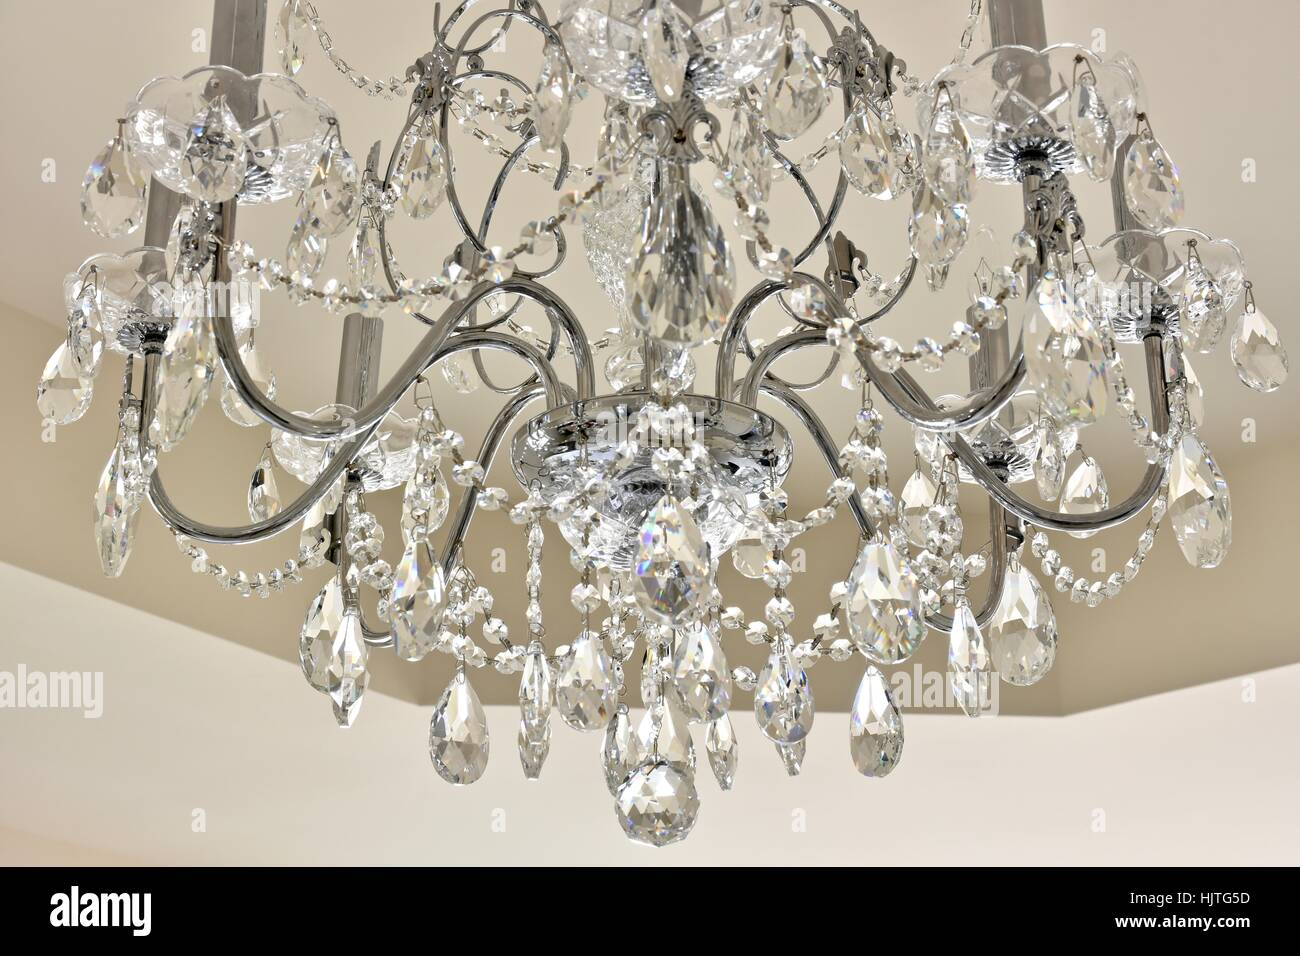 Crystal chandelier hanging from the ceiling of a master bedroom crystal chandelier hanging from the ceiling of a master bedroom aloadofball Choice Image